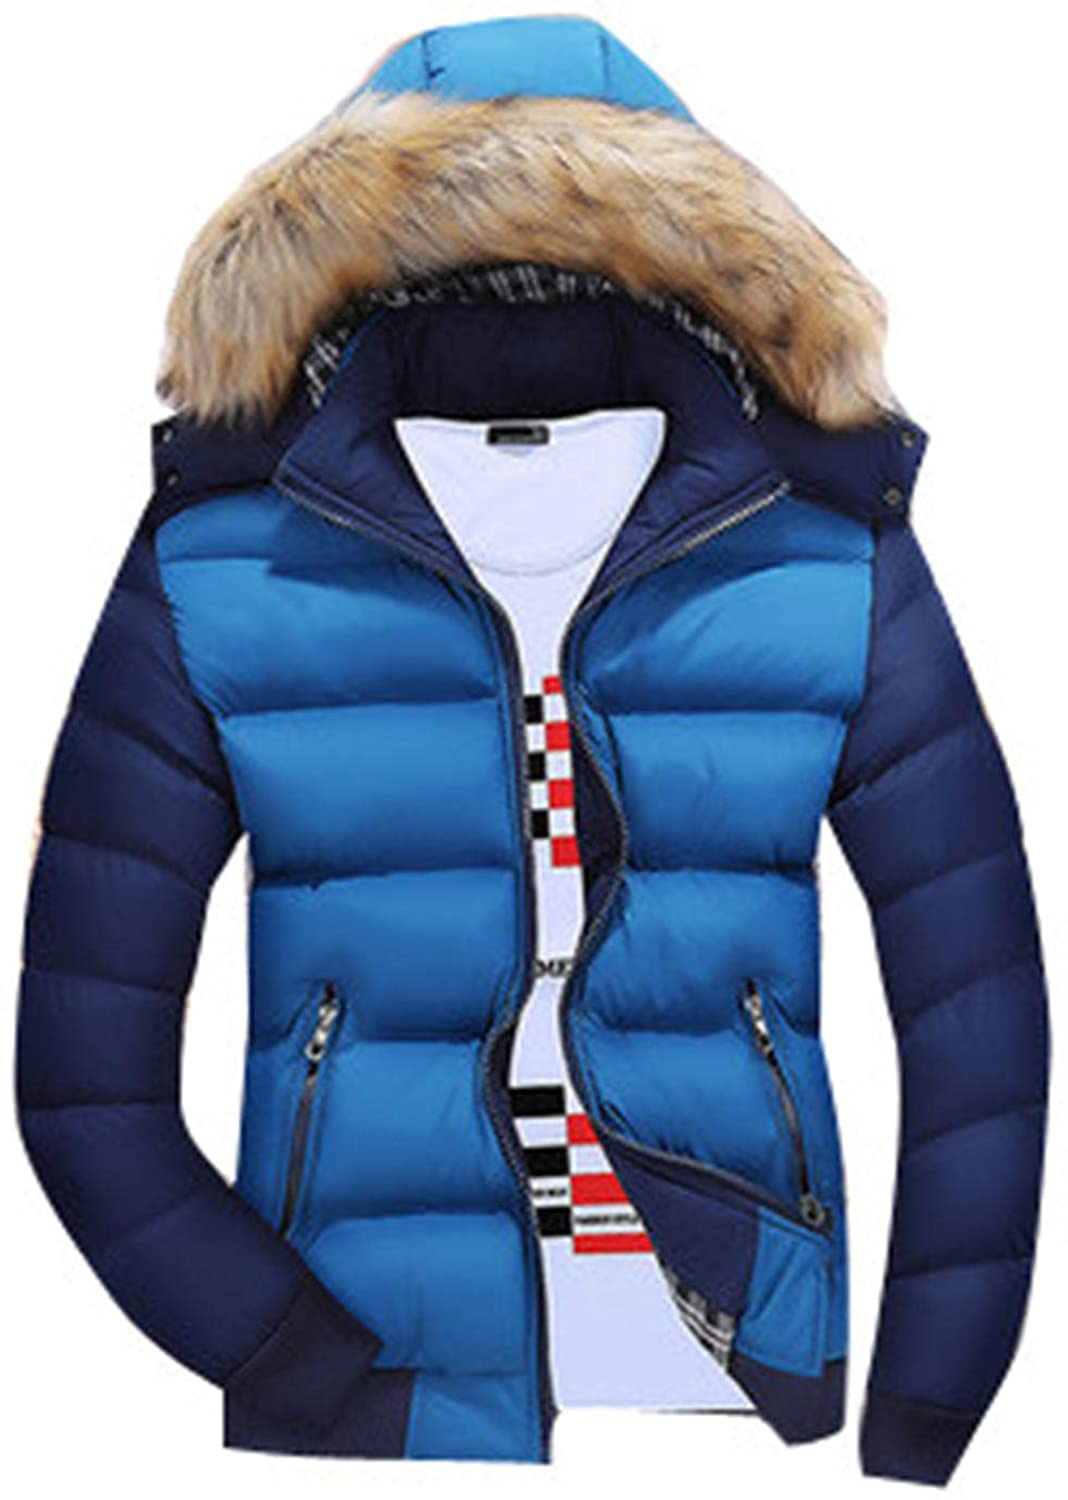 Mens Puffer Jacket Warm Winter Coat Windproof Thickened Outerwear with Fur Hood Overcoat